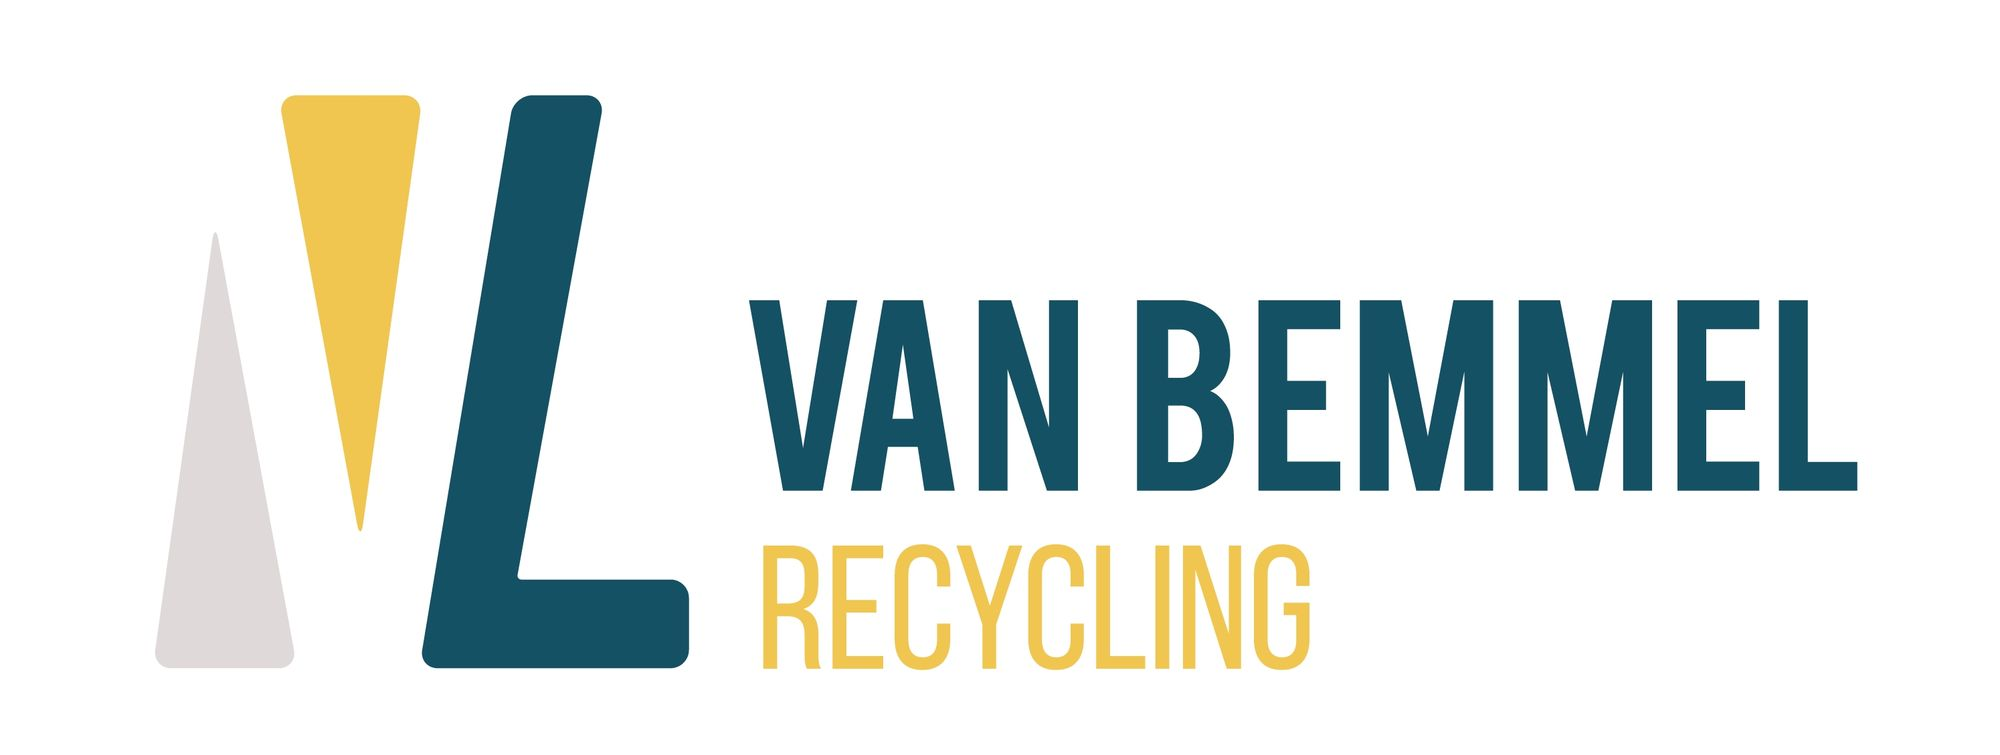 Van Bemmel Recycling